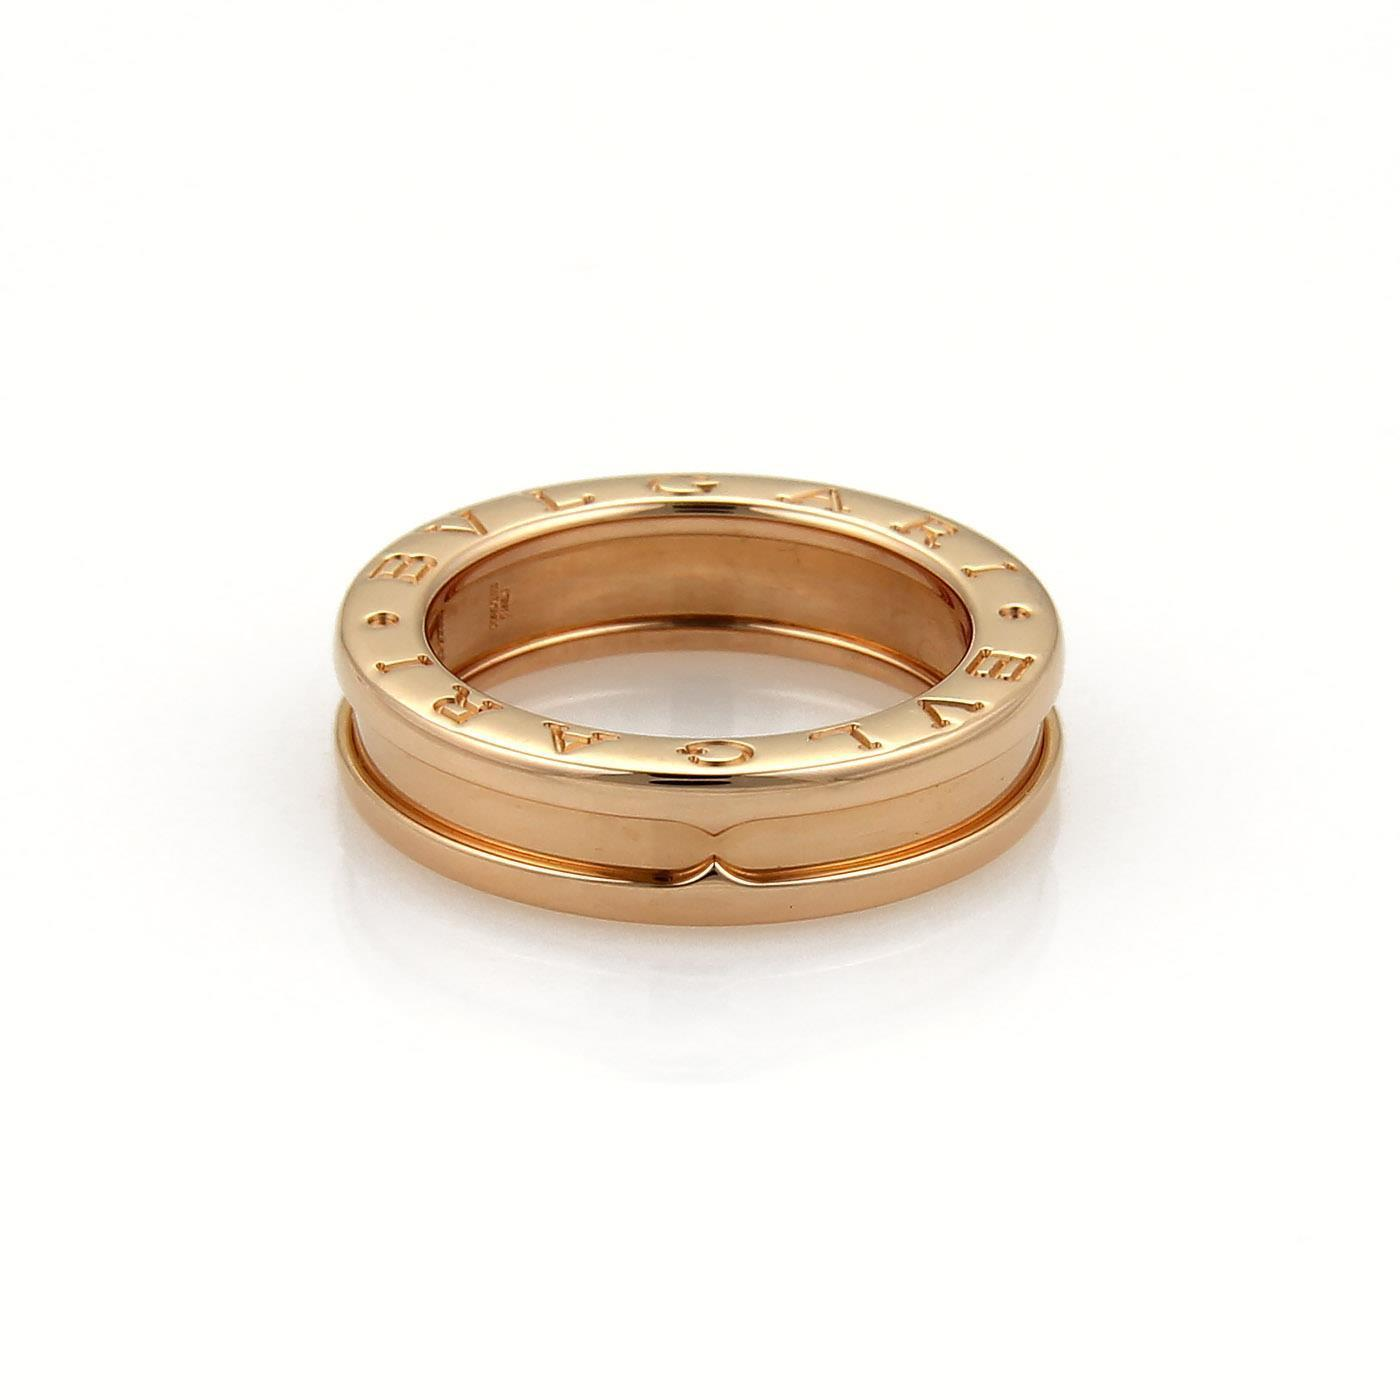 BVLGARI Rose Gold B Zero1 18k 5mm Band Size Eu 48us 45 Ring Tradesy